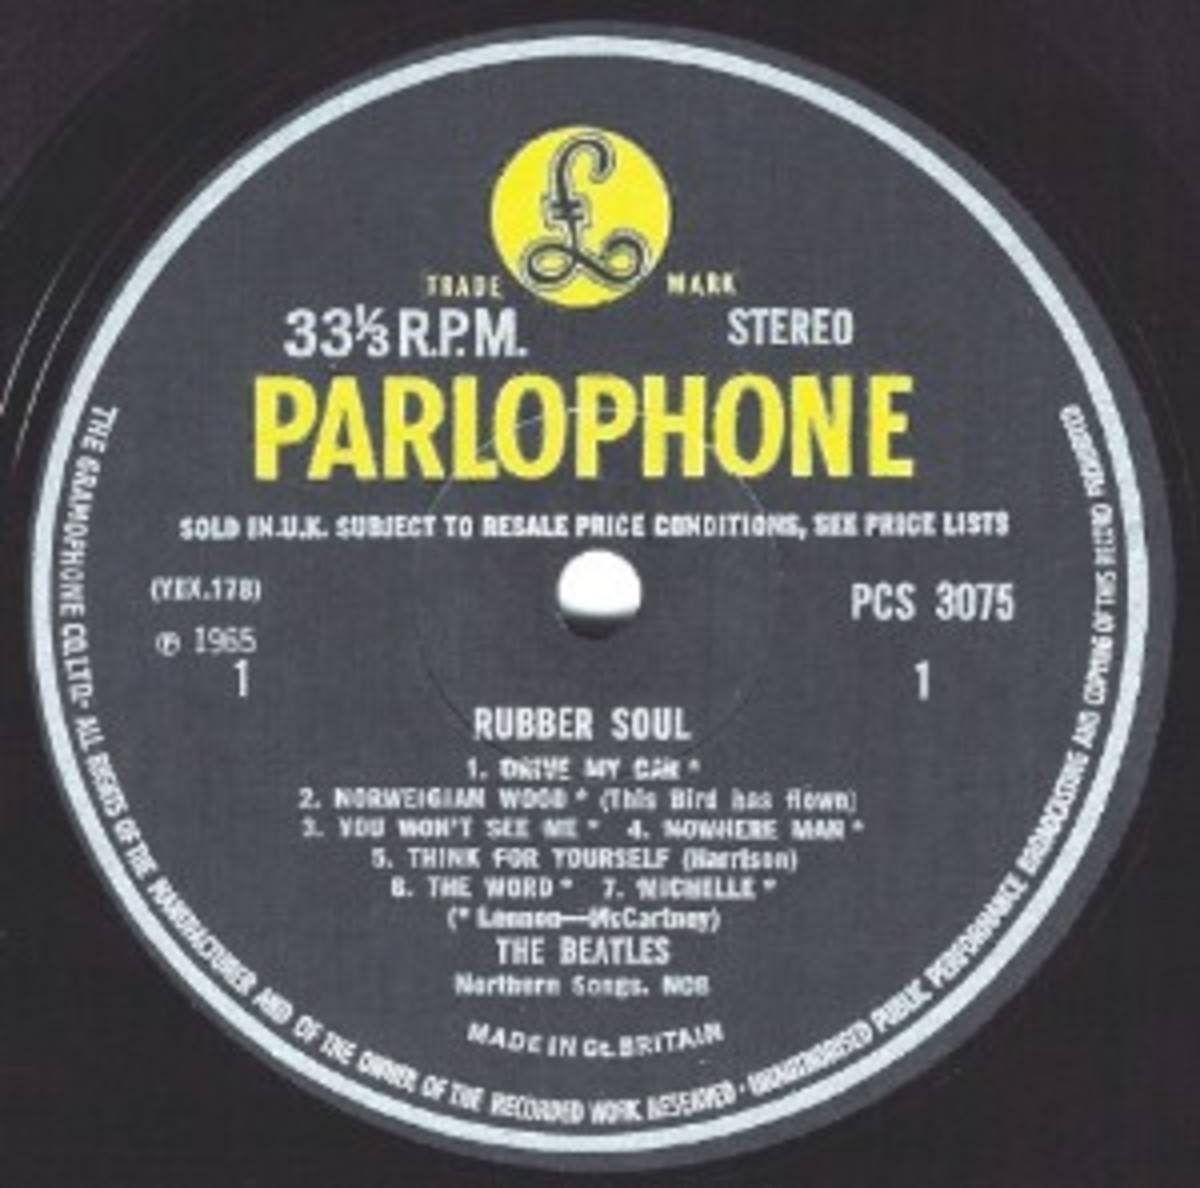 The Beatles - Rubber Soul (Parlophone PCS 3075)